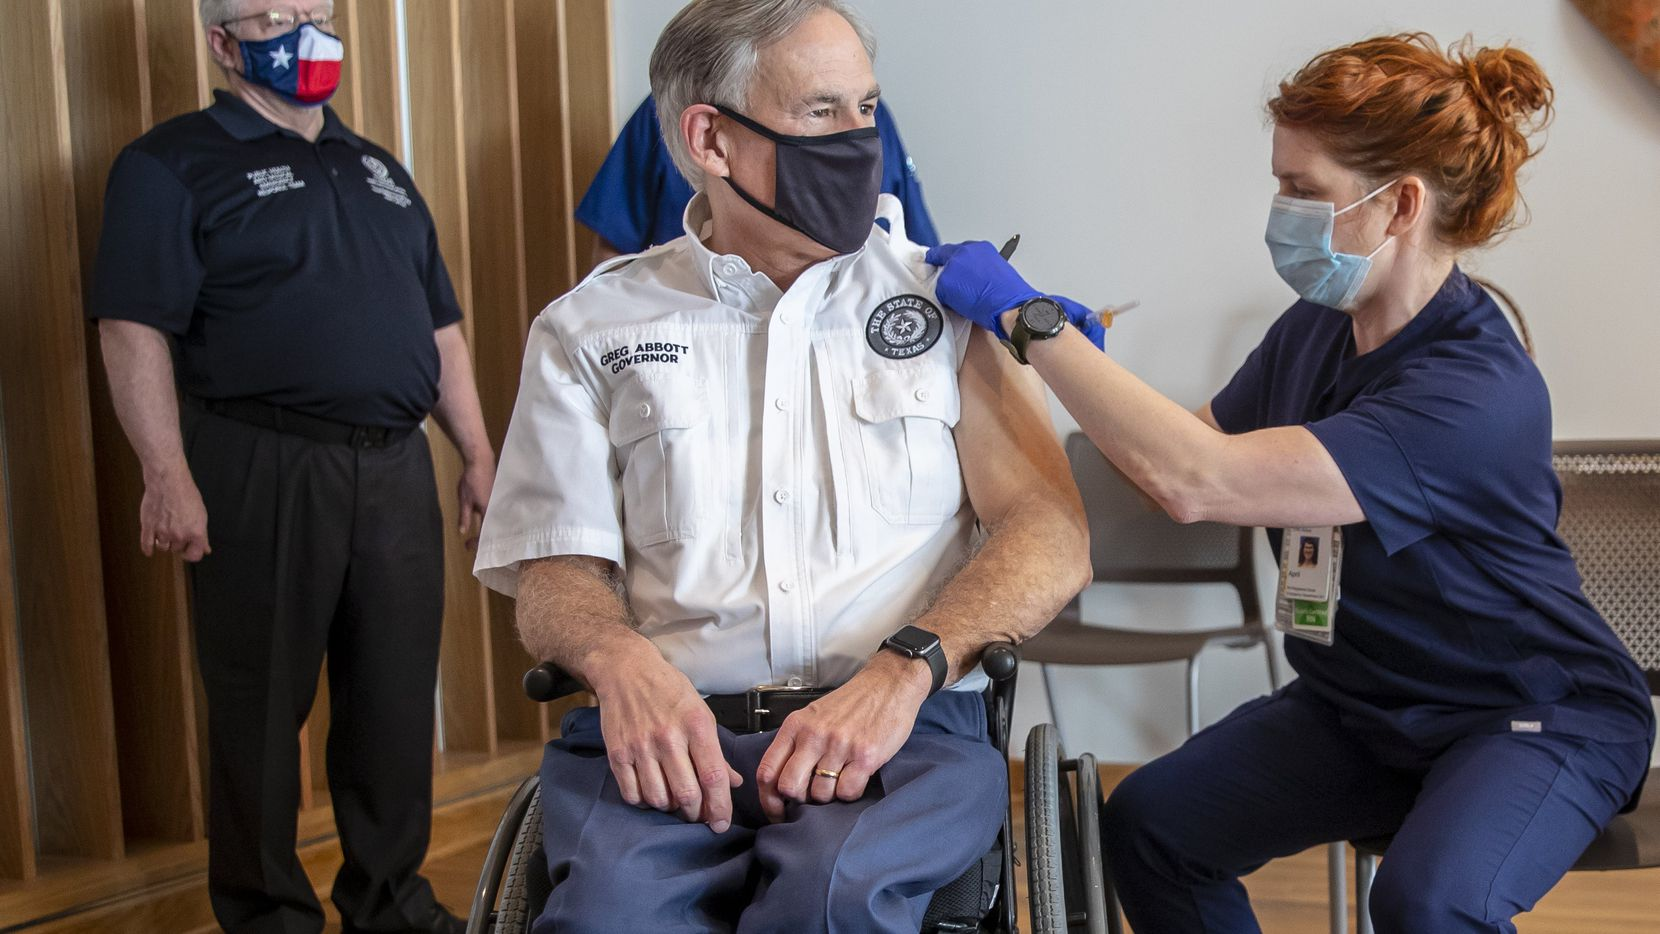 Registered nurse April Burge gave Texas Gov. Greg Abbott a COVID-19 vaccine shot on Dec. 22, 2020. The governor announced Aug. 17 that he had tested positive for COVID-19.